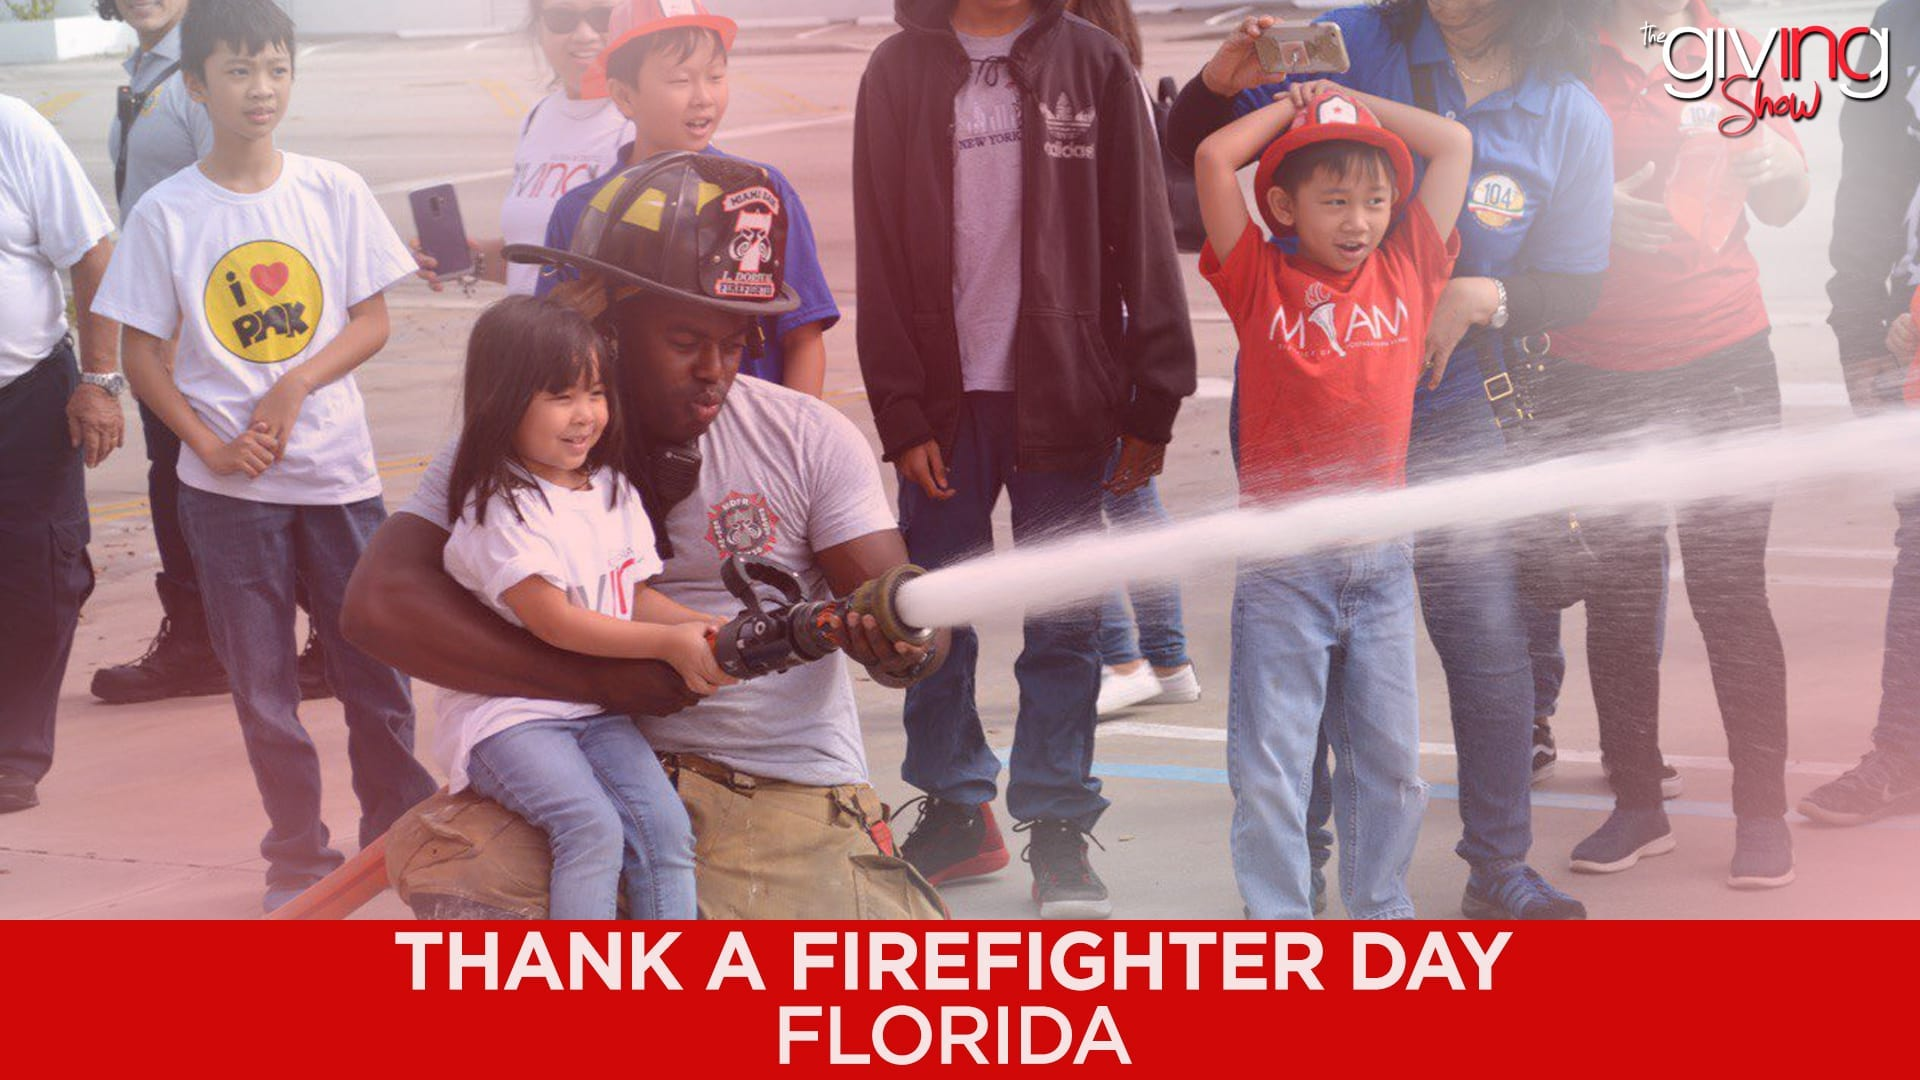 Thank a Firefighter Day